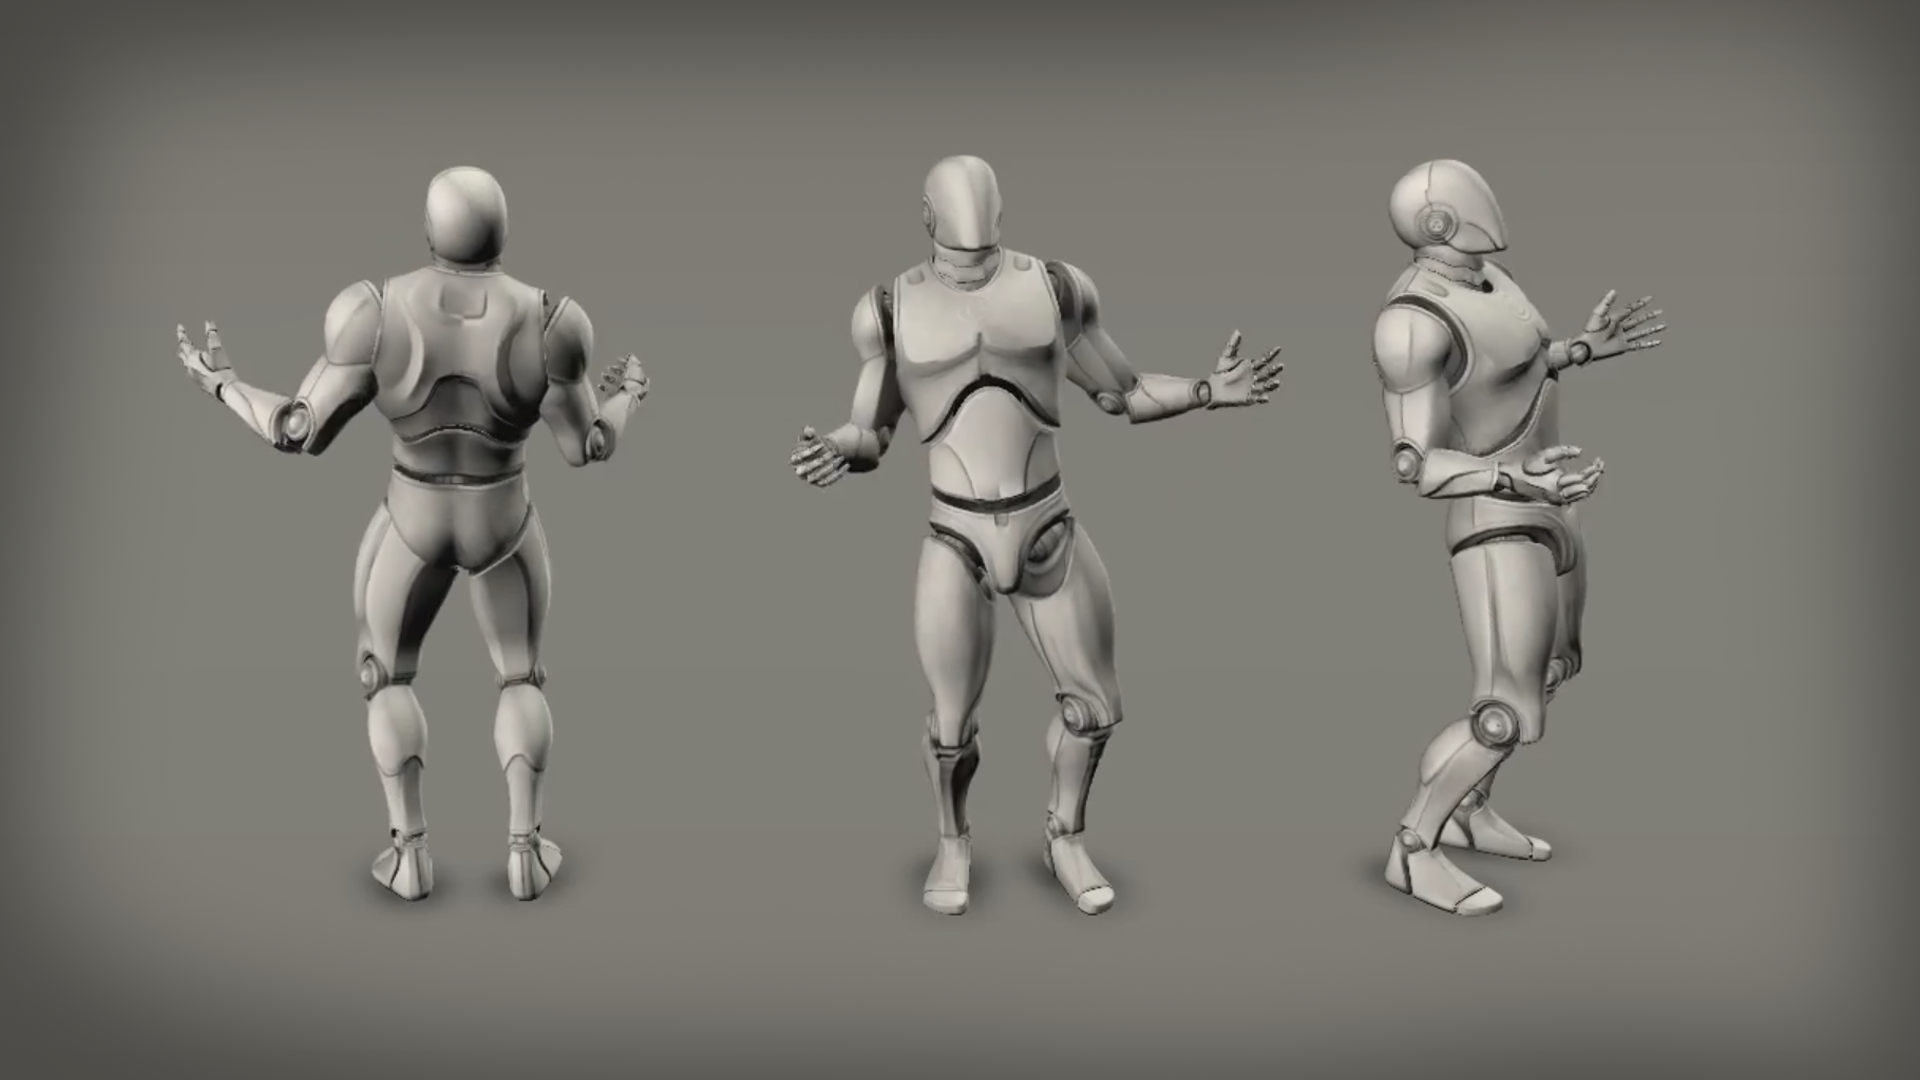 Dialog Animations by Moonshine Studio LLC